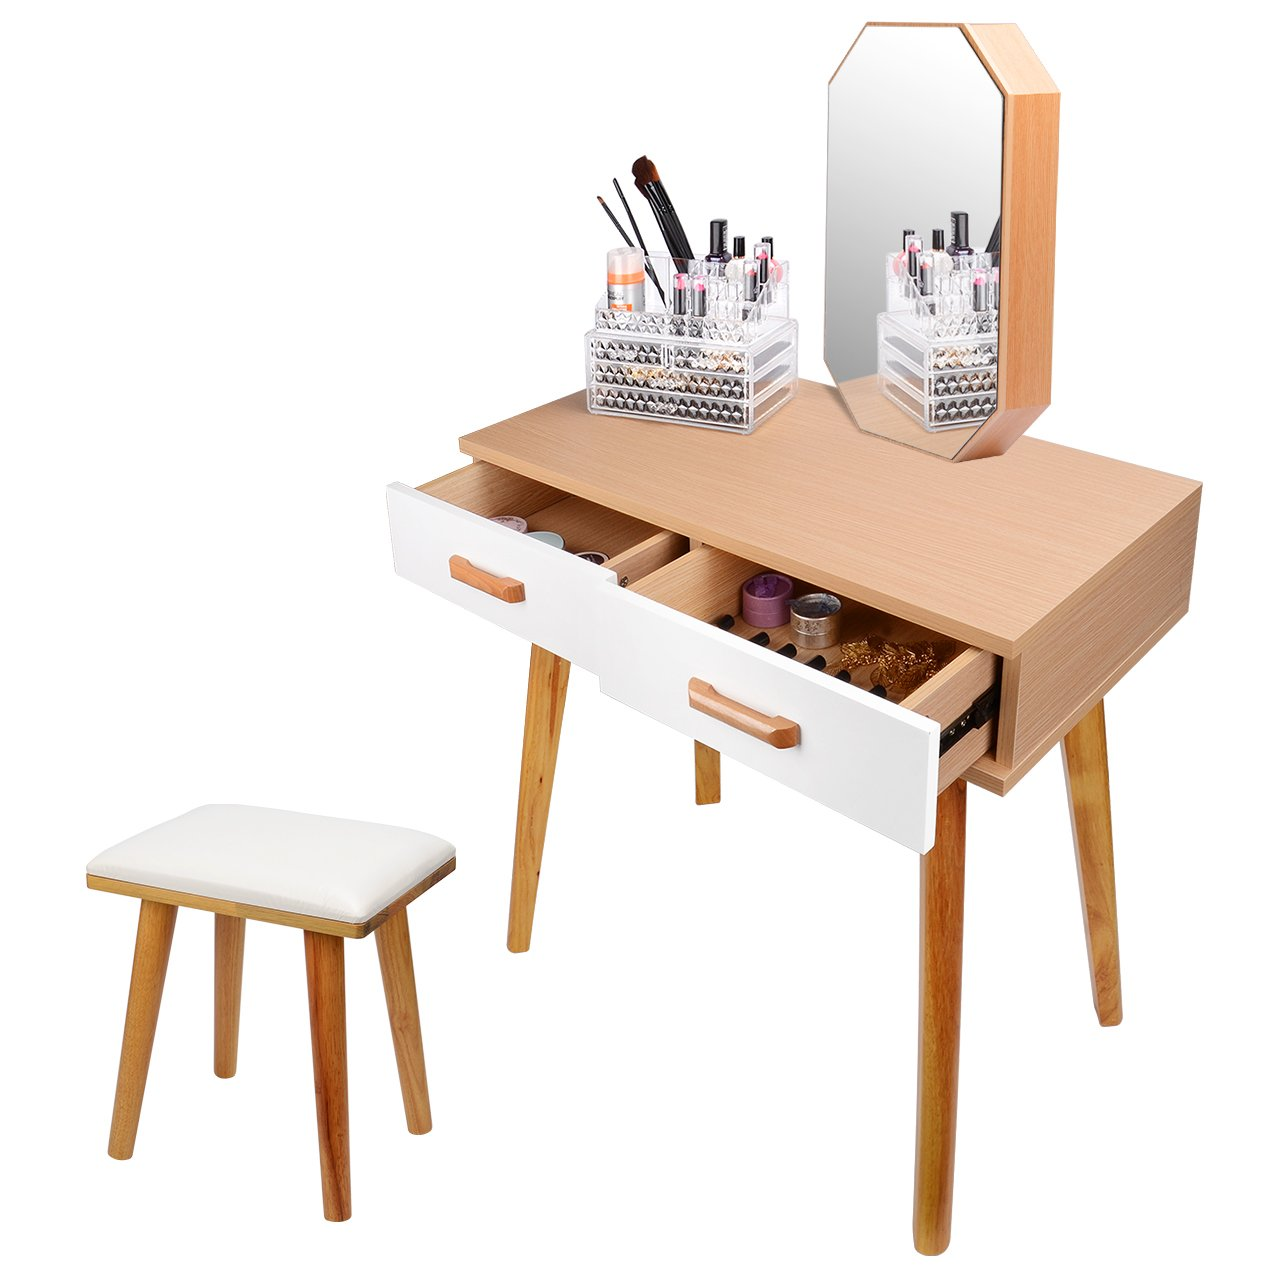 SortWise Vanity Table Set with with Mirror & Cushioned Stool, Dressing Table Vanity Makeup Table 2 Large Sliding Drawers, Removable Cosmetic Cabinet Organizer for Jewerly/Nail Polishes/Lipsticks, Wooden Furniture Bedroom